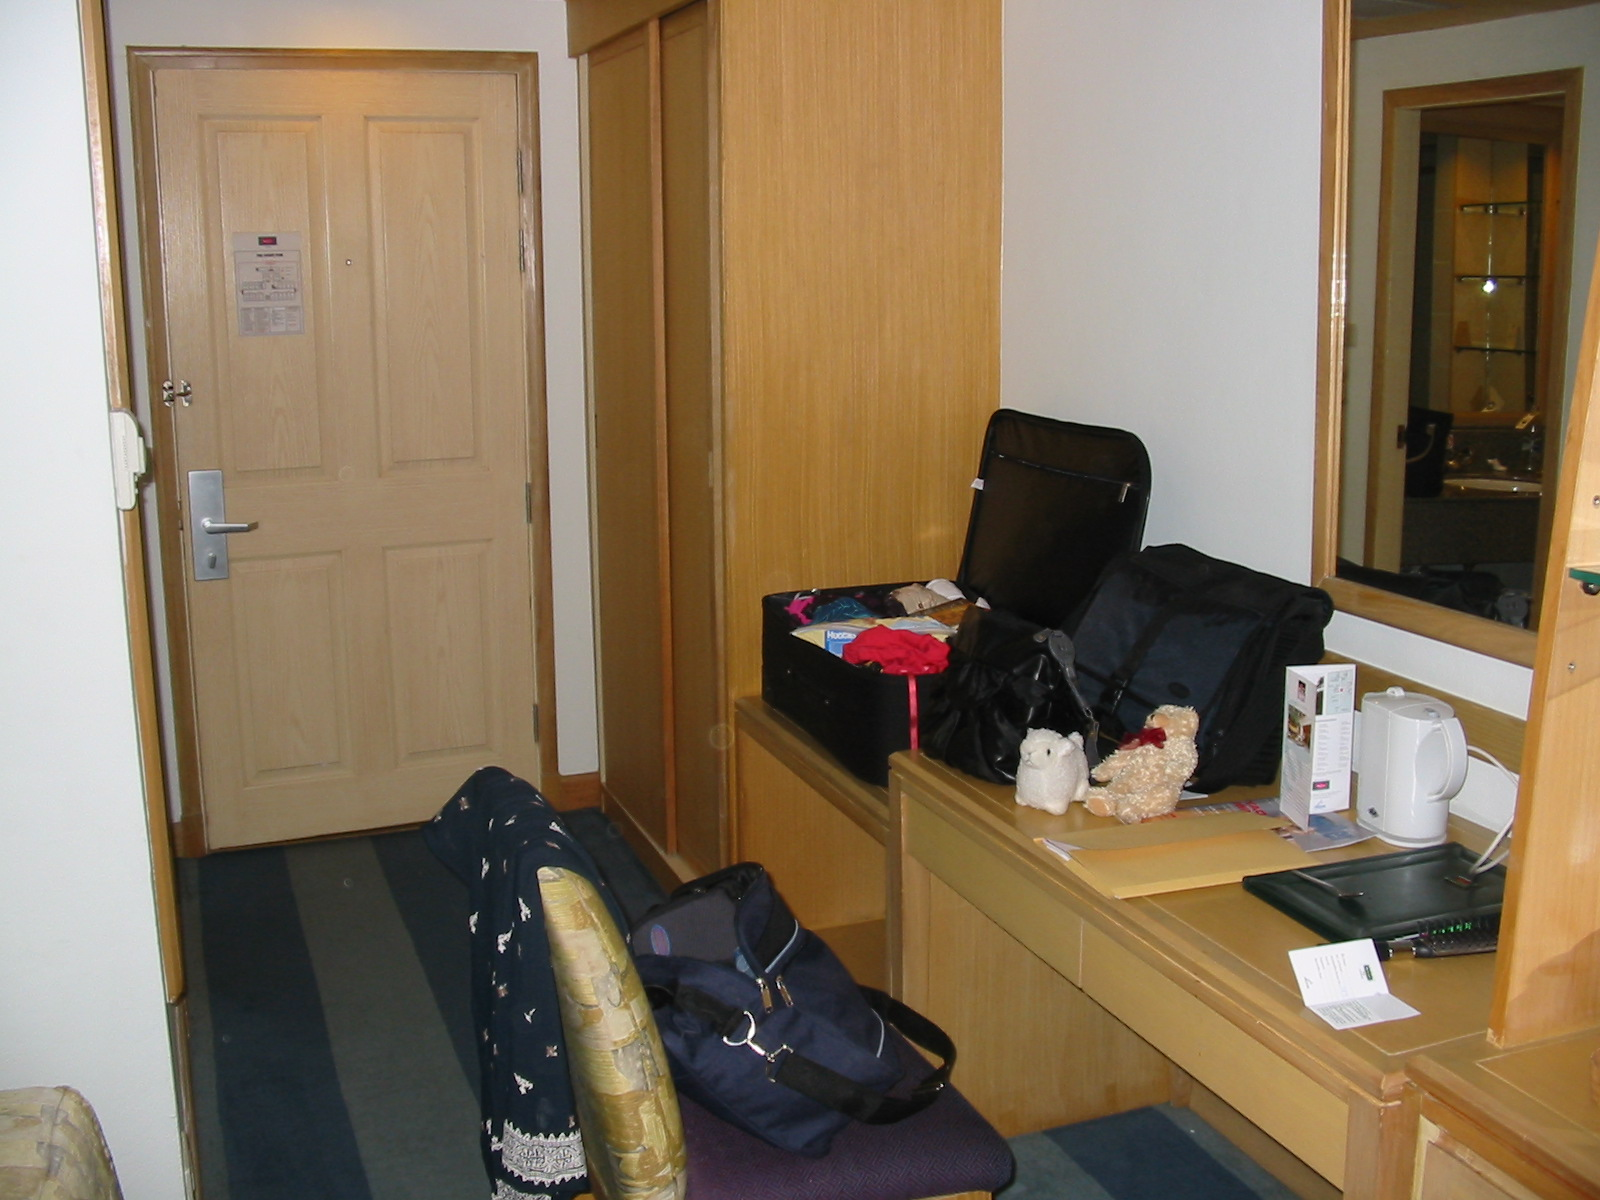 Another view of our hotel room at the Mercure